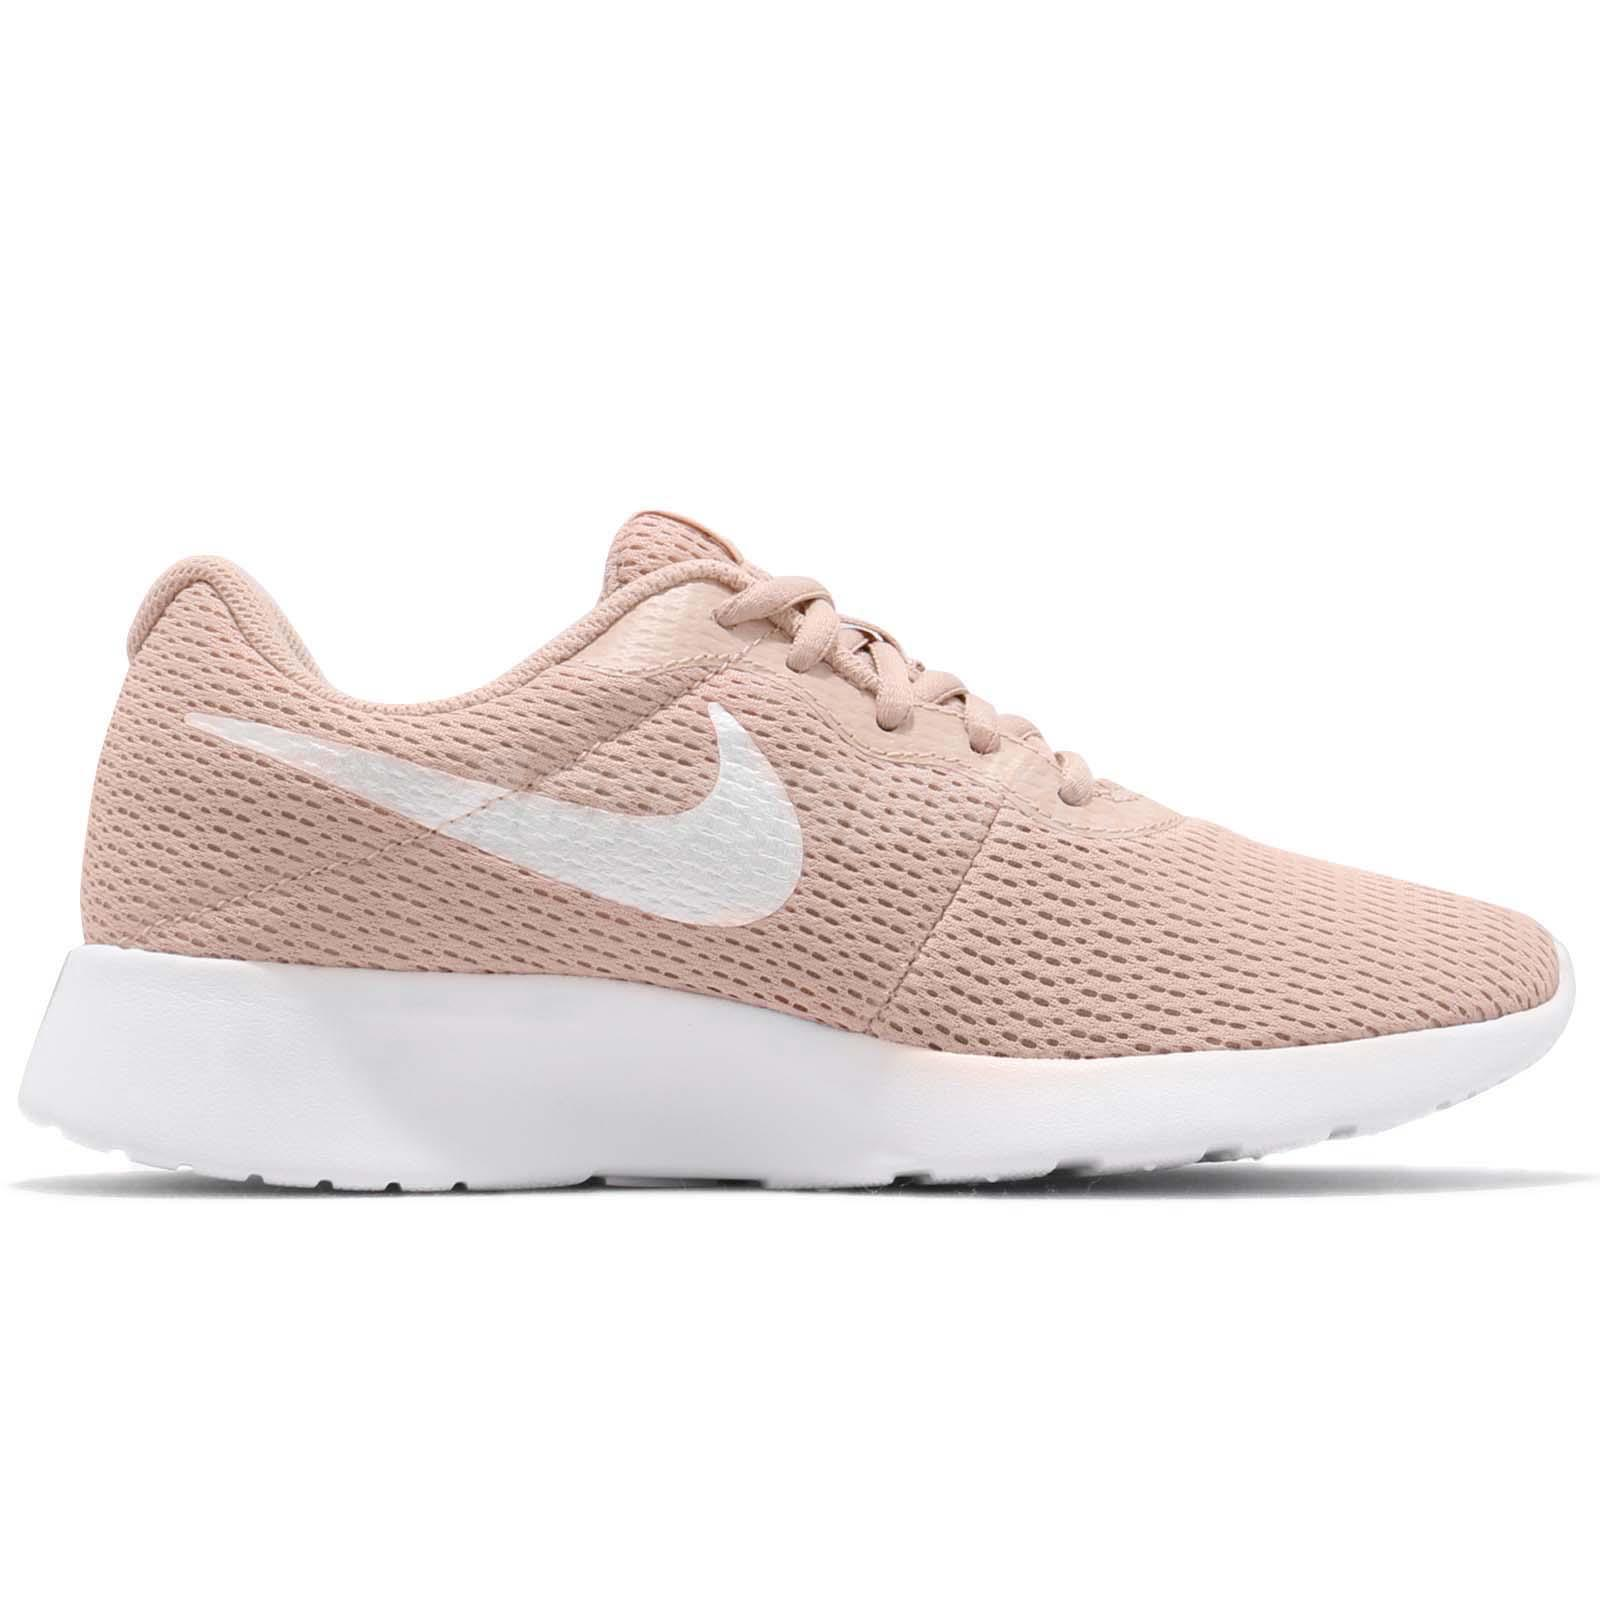 d6c7e704072 Nike Wmns Tanjun Particle Beige White Women Running Shoes Sneakers ...